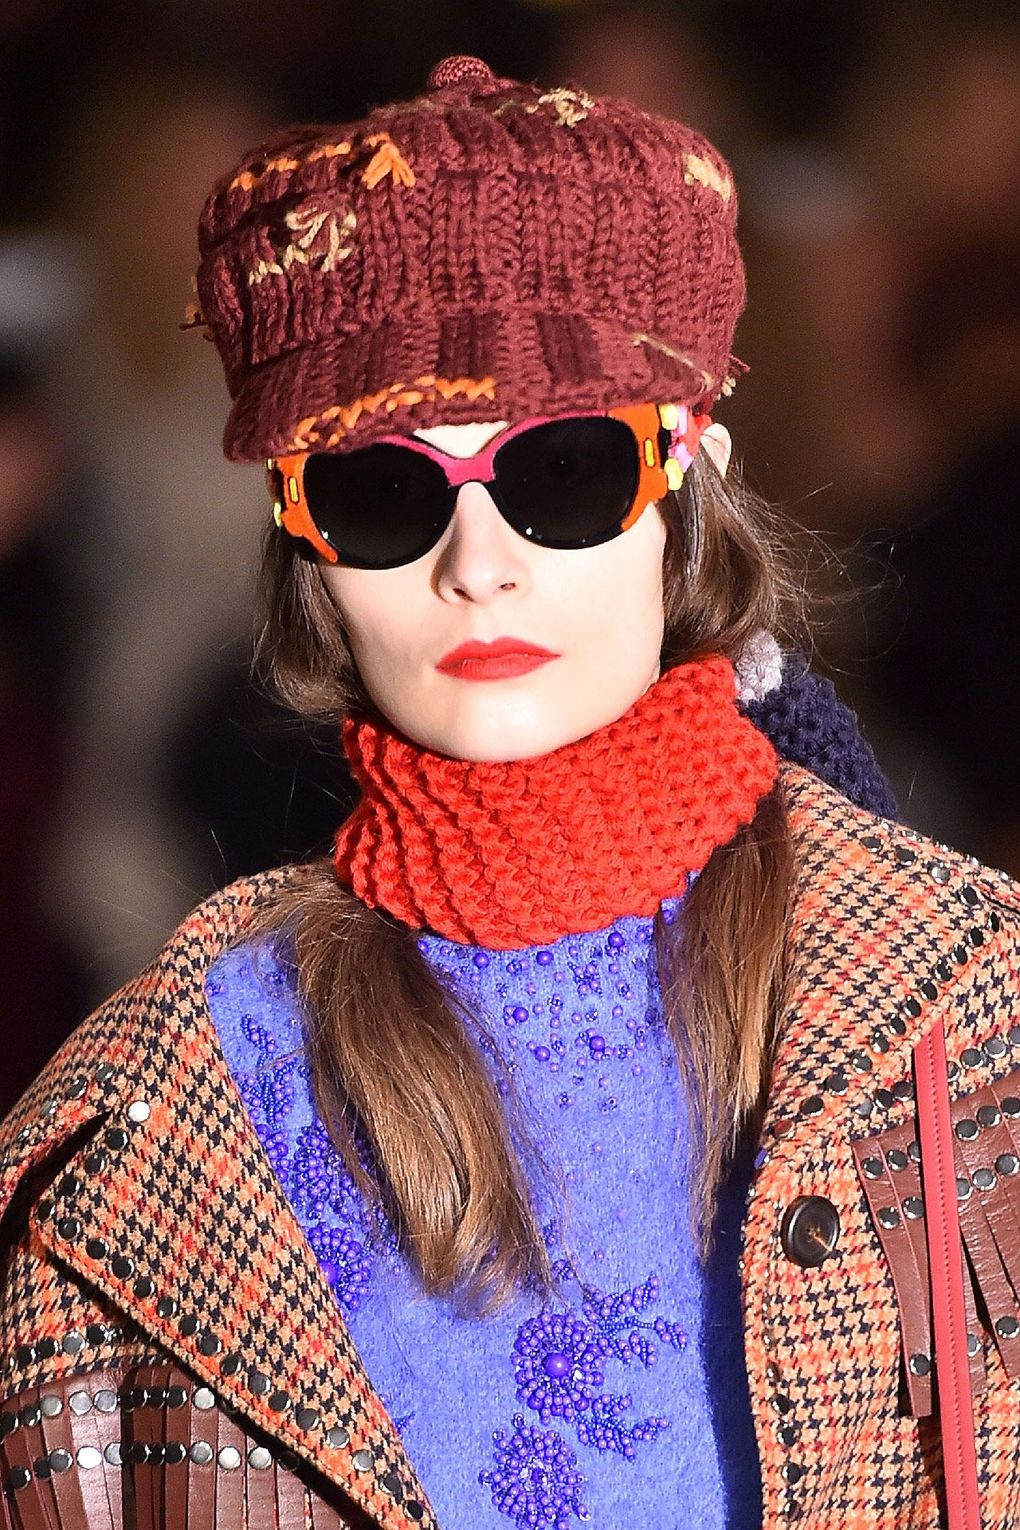 The City: Milan The Show: Prada The Look: Tucked-into-scarf-hair